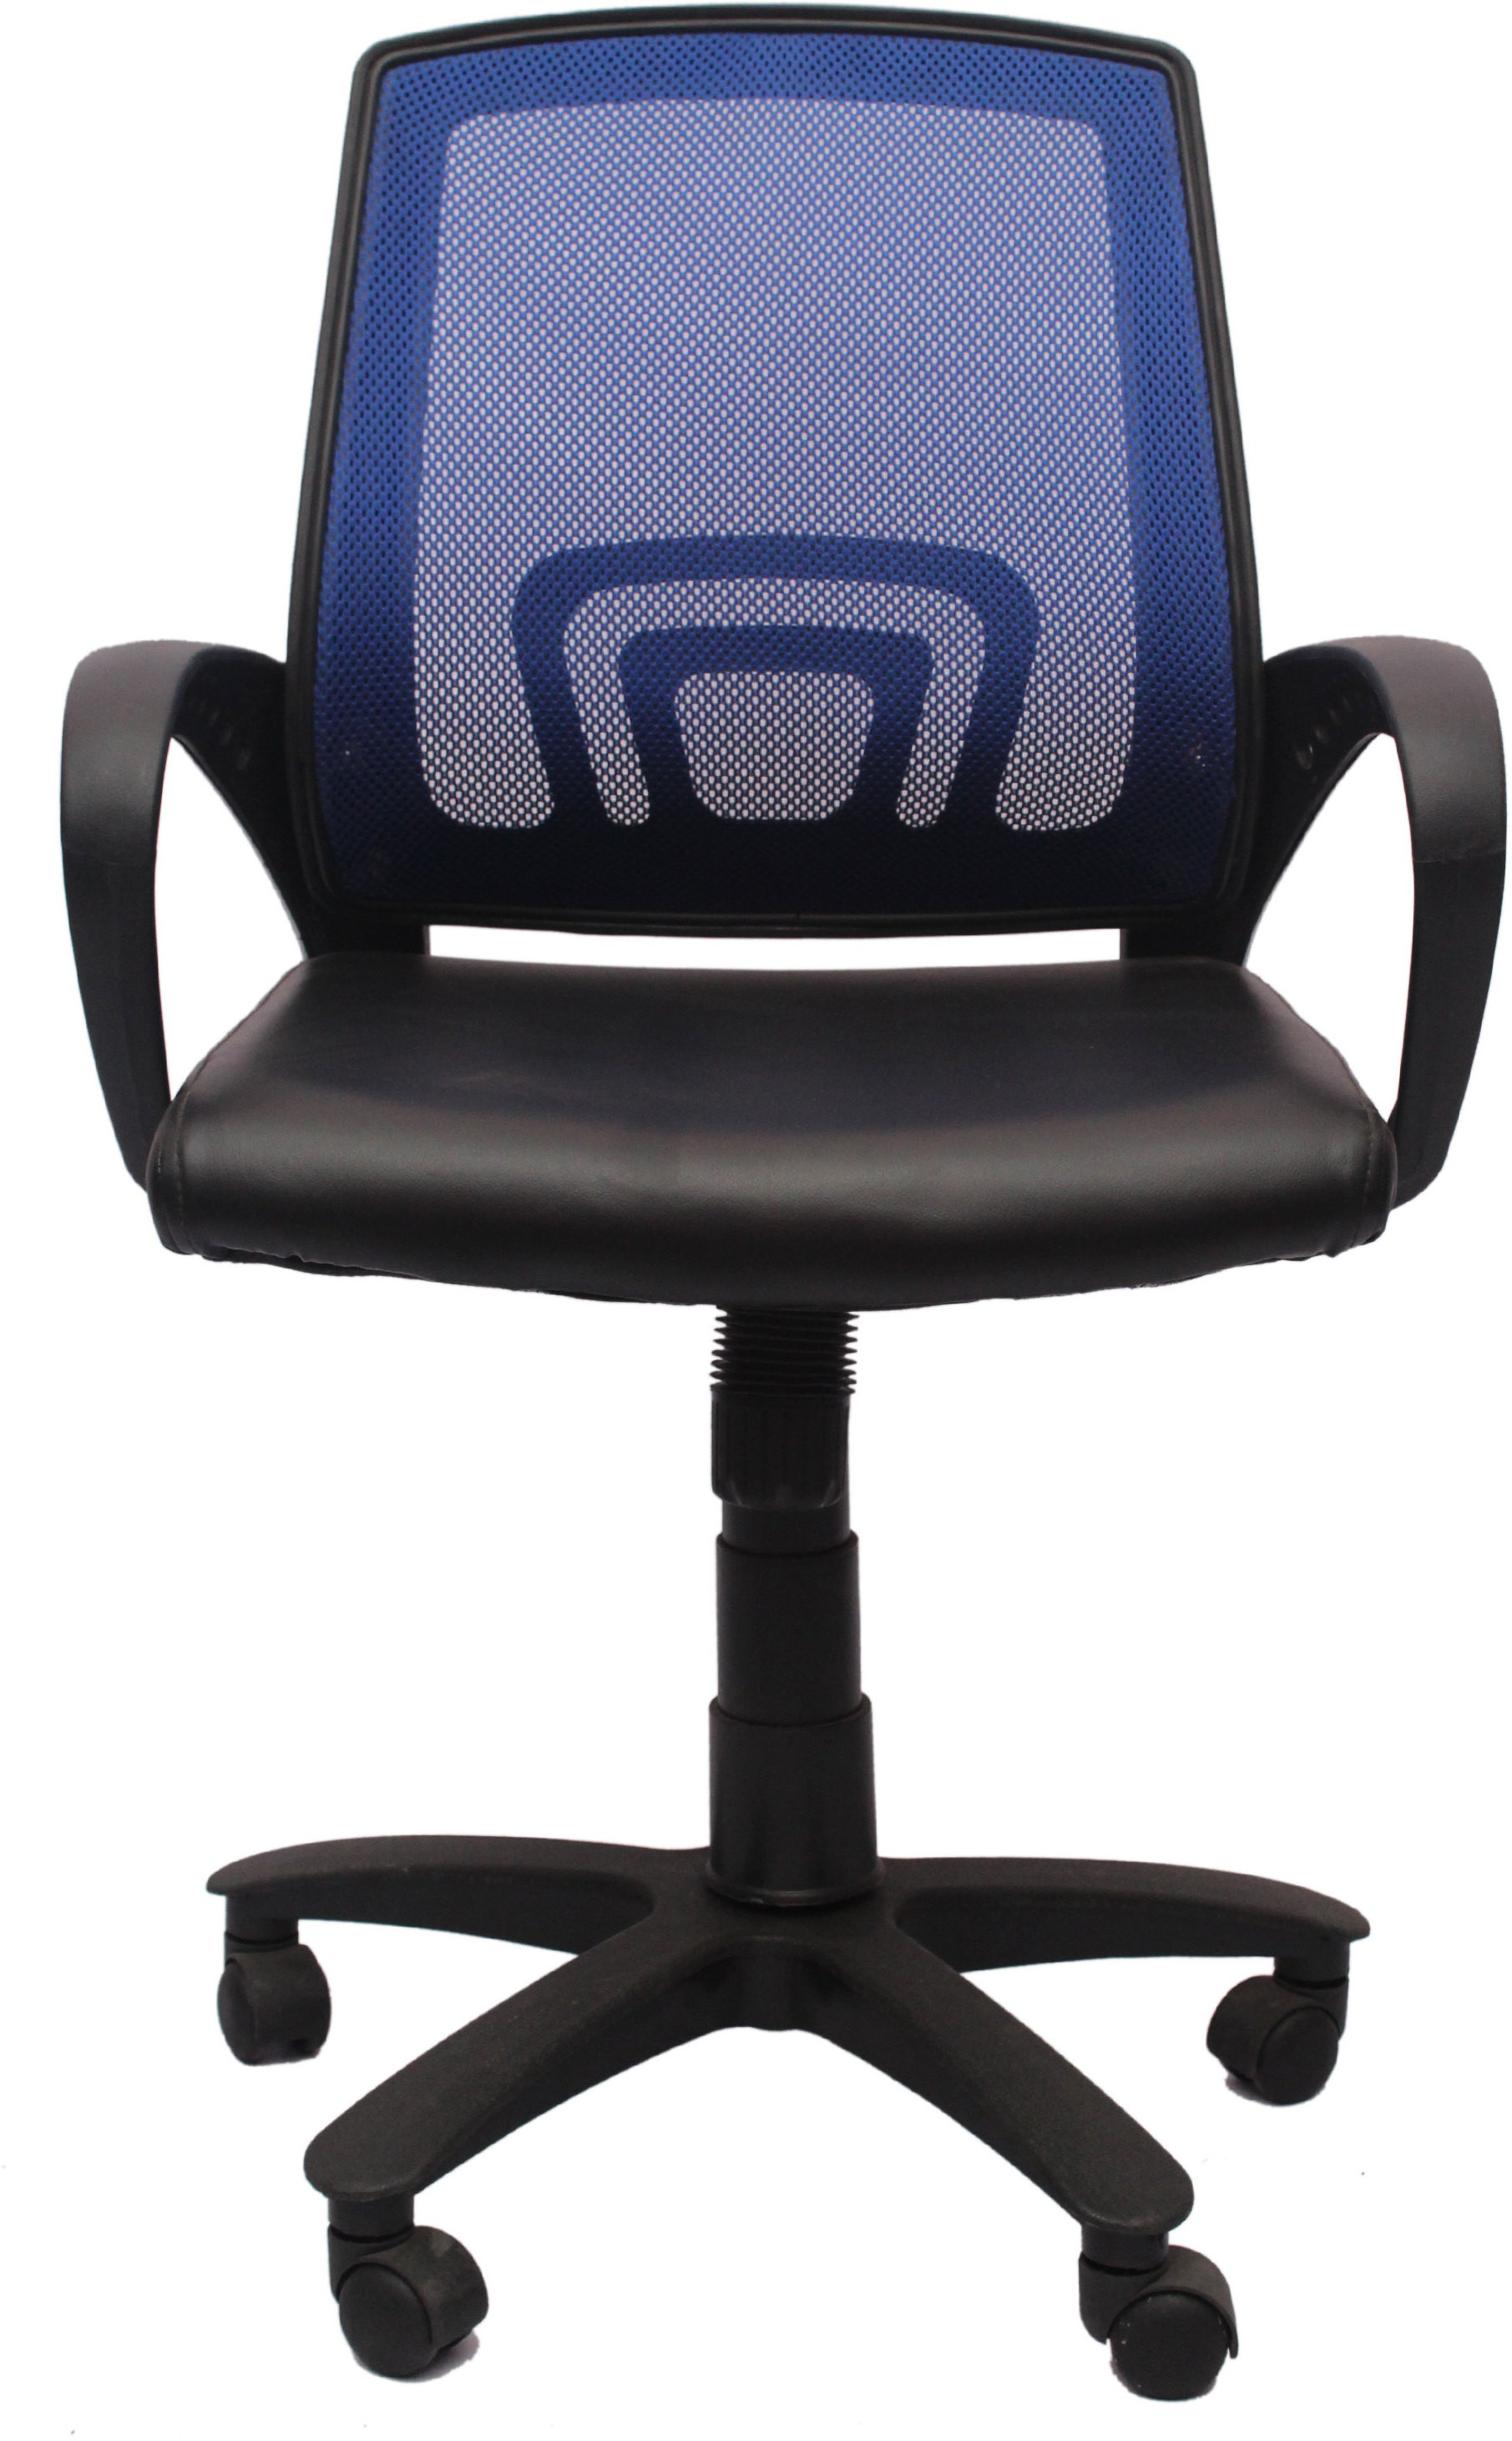 Deals - Fabric Chairs Starting at 2,599